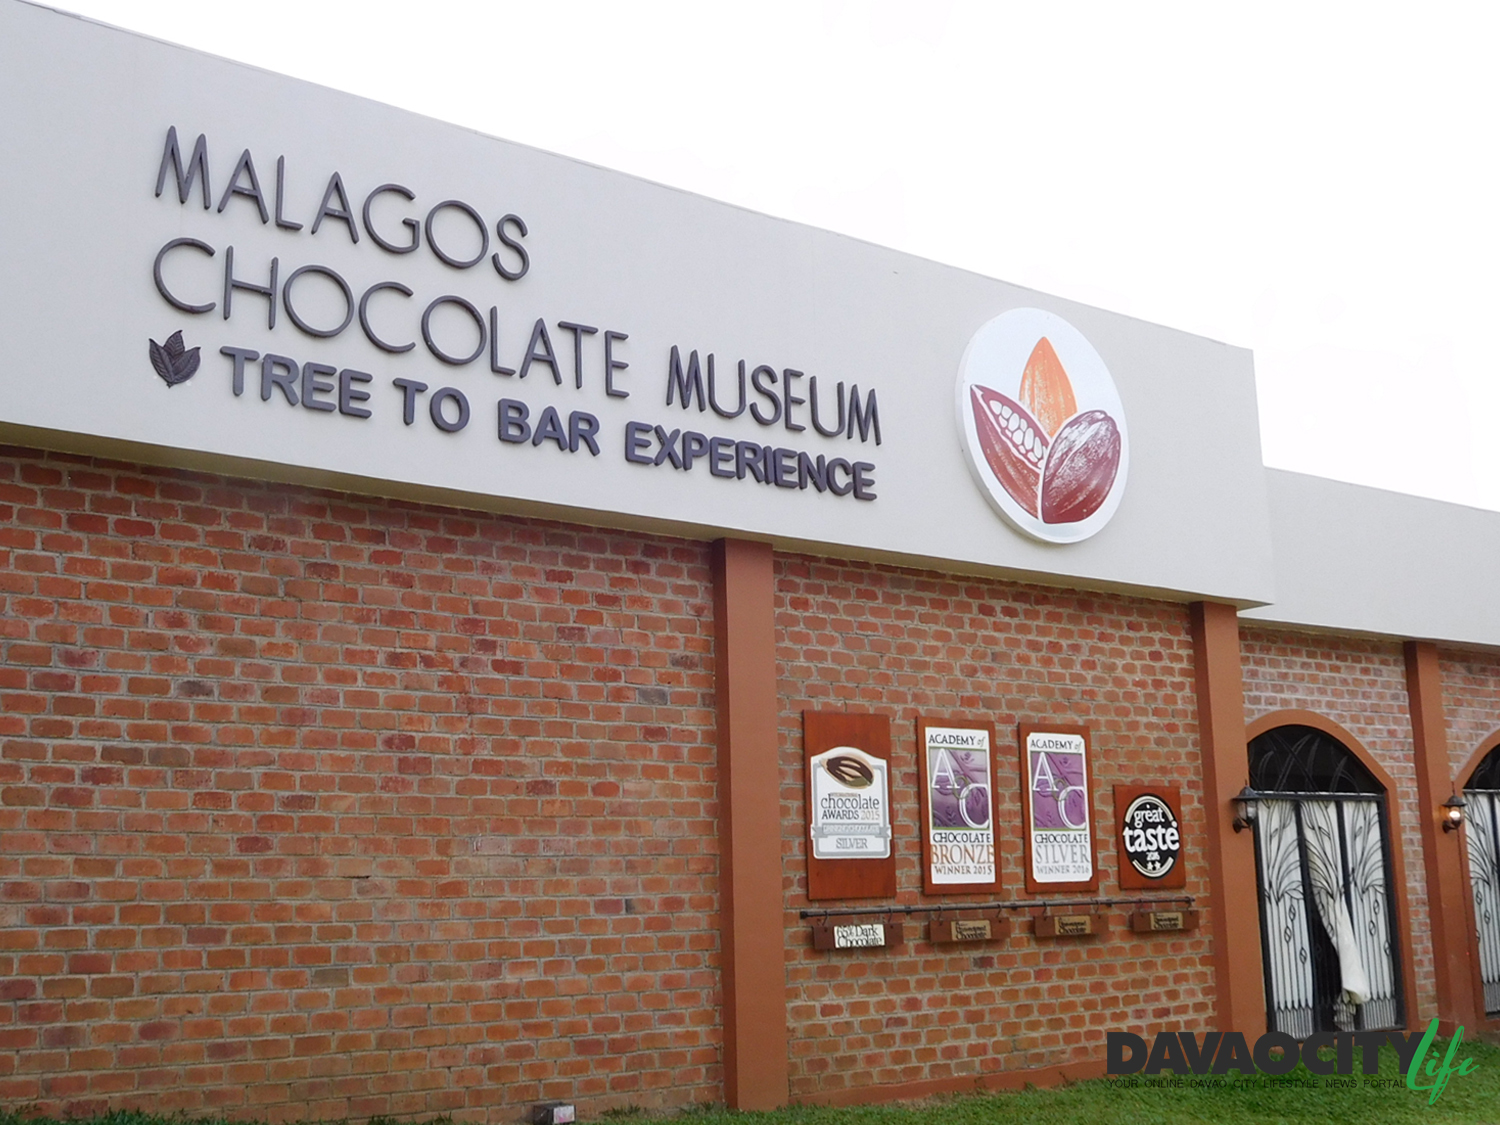 A First in the Philippines: Malagos Chocolate Museum - Davao